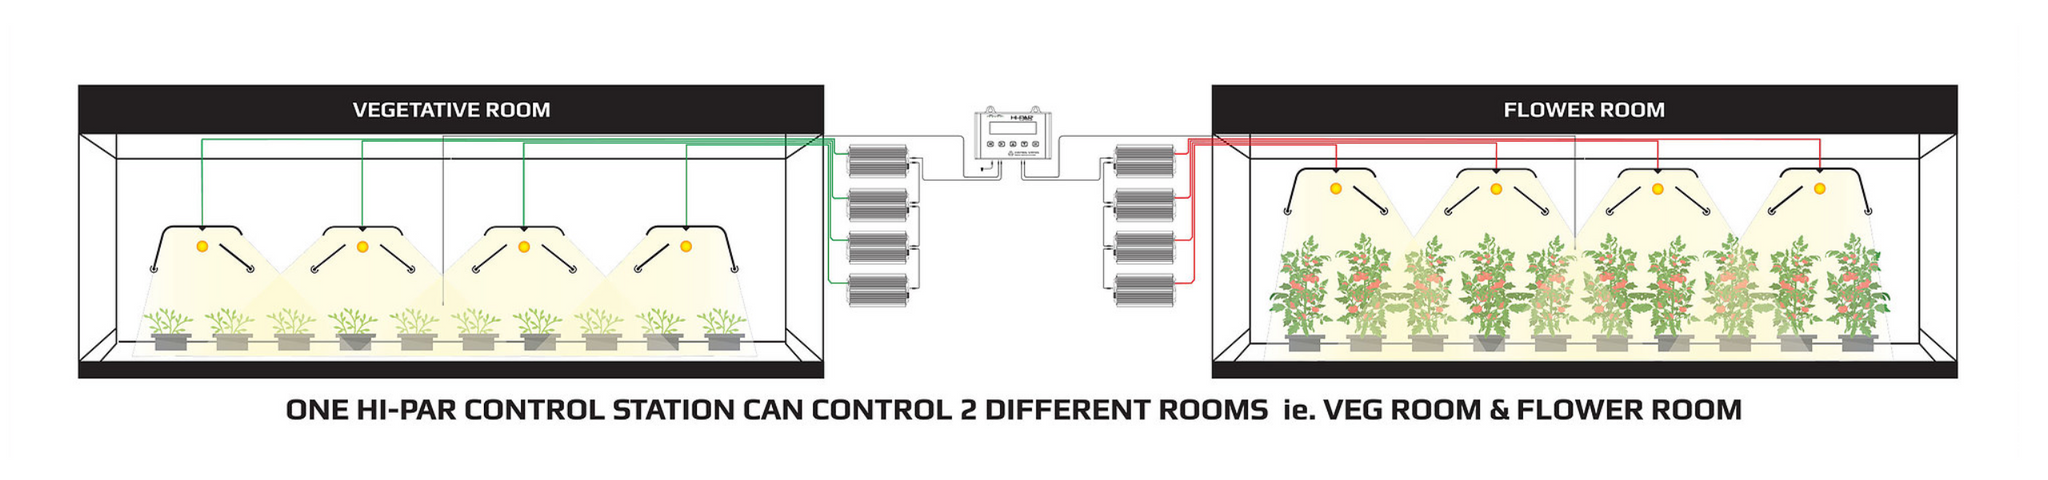 hipar control station two rooms zones hi-par control